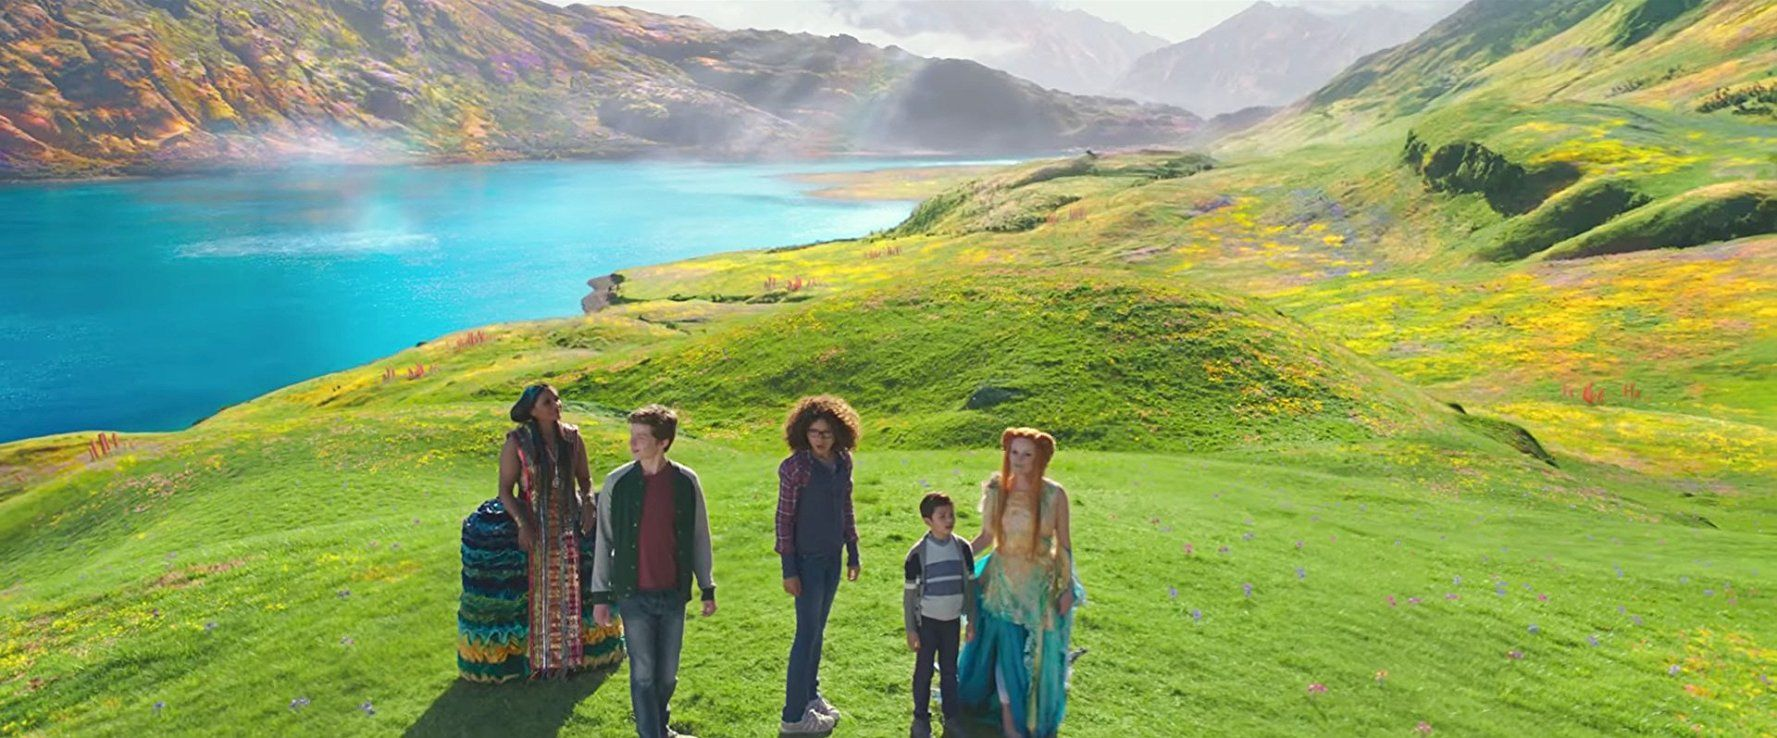 a wrinkle in time movie free online 123movies